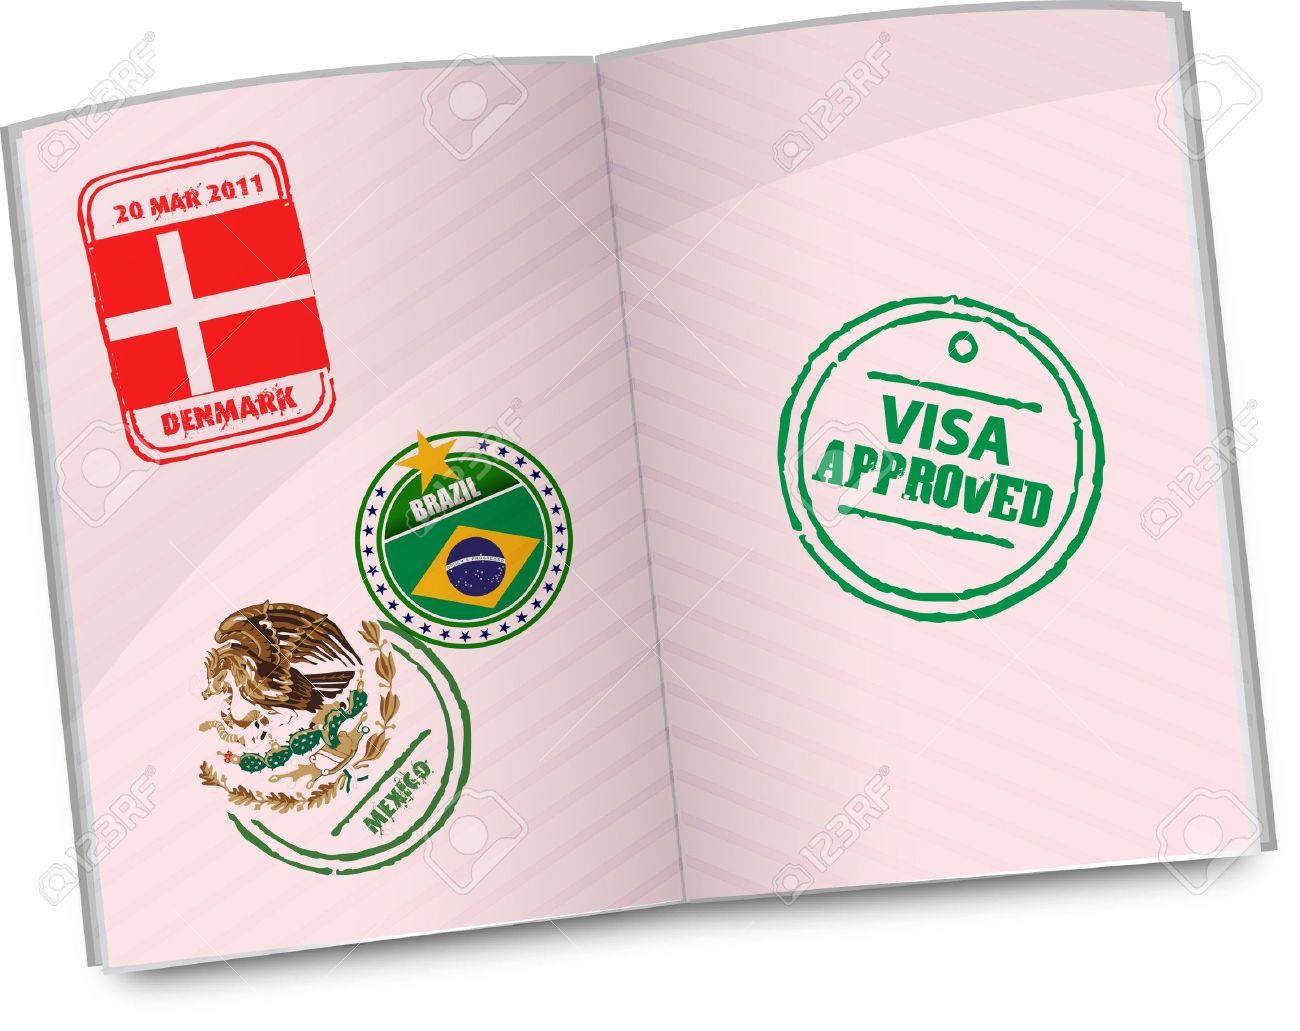 Clip art use these. Passport clipart